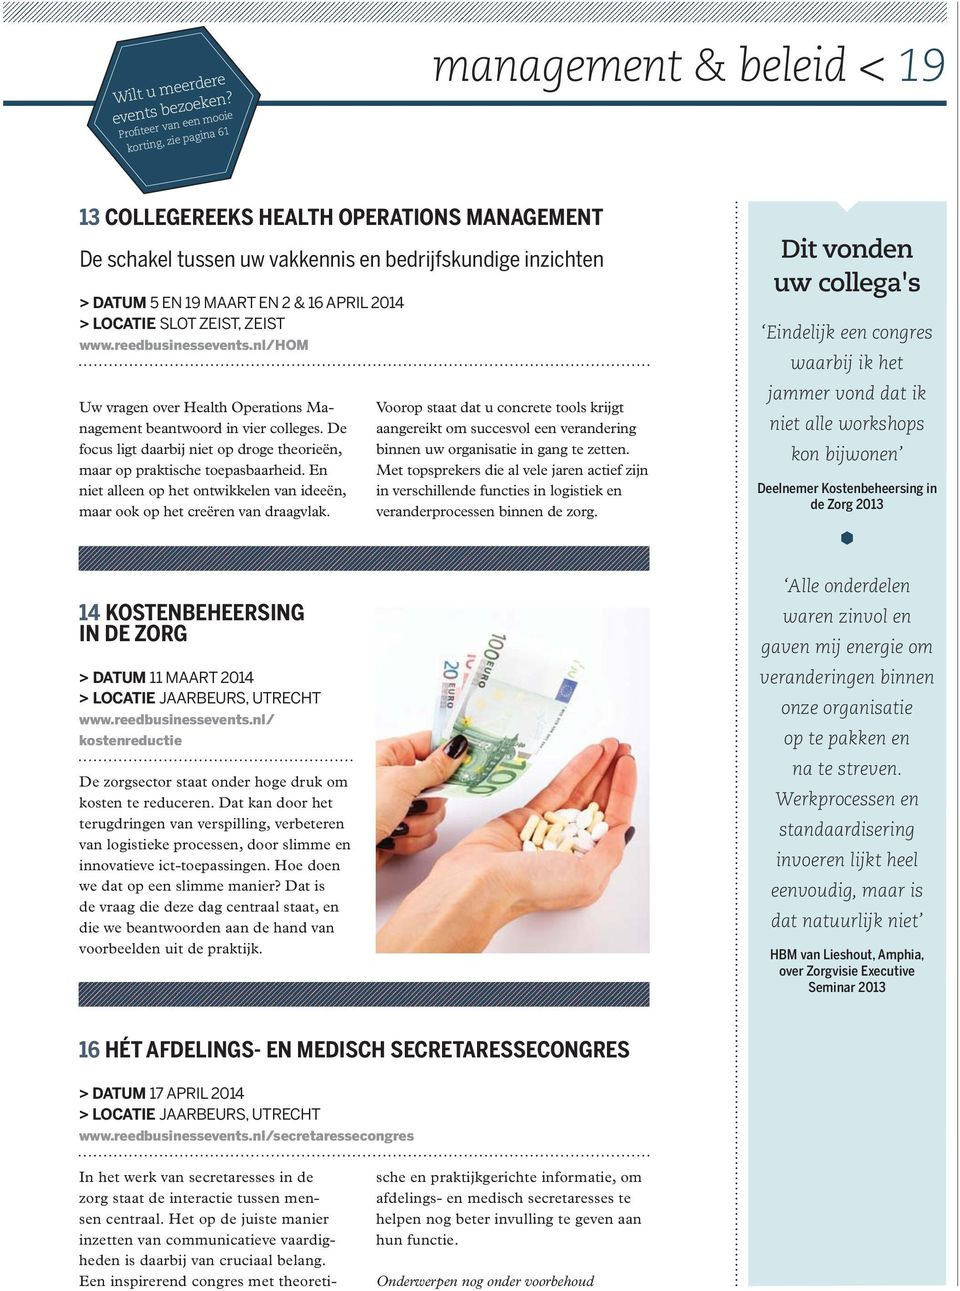 EN 2 & 16 APRIL 2014 > LOCATIE SLOT ZEIST, ZEIST www.reedbusinessevents.nl/hom Uw vragen over Health Operations Management beantwoord in vier colleges.